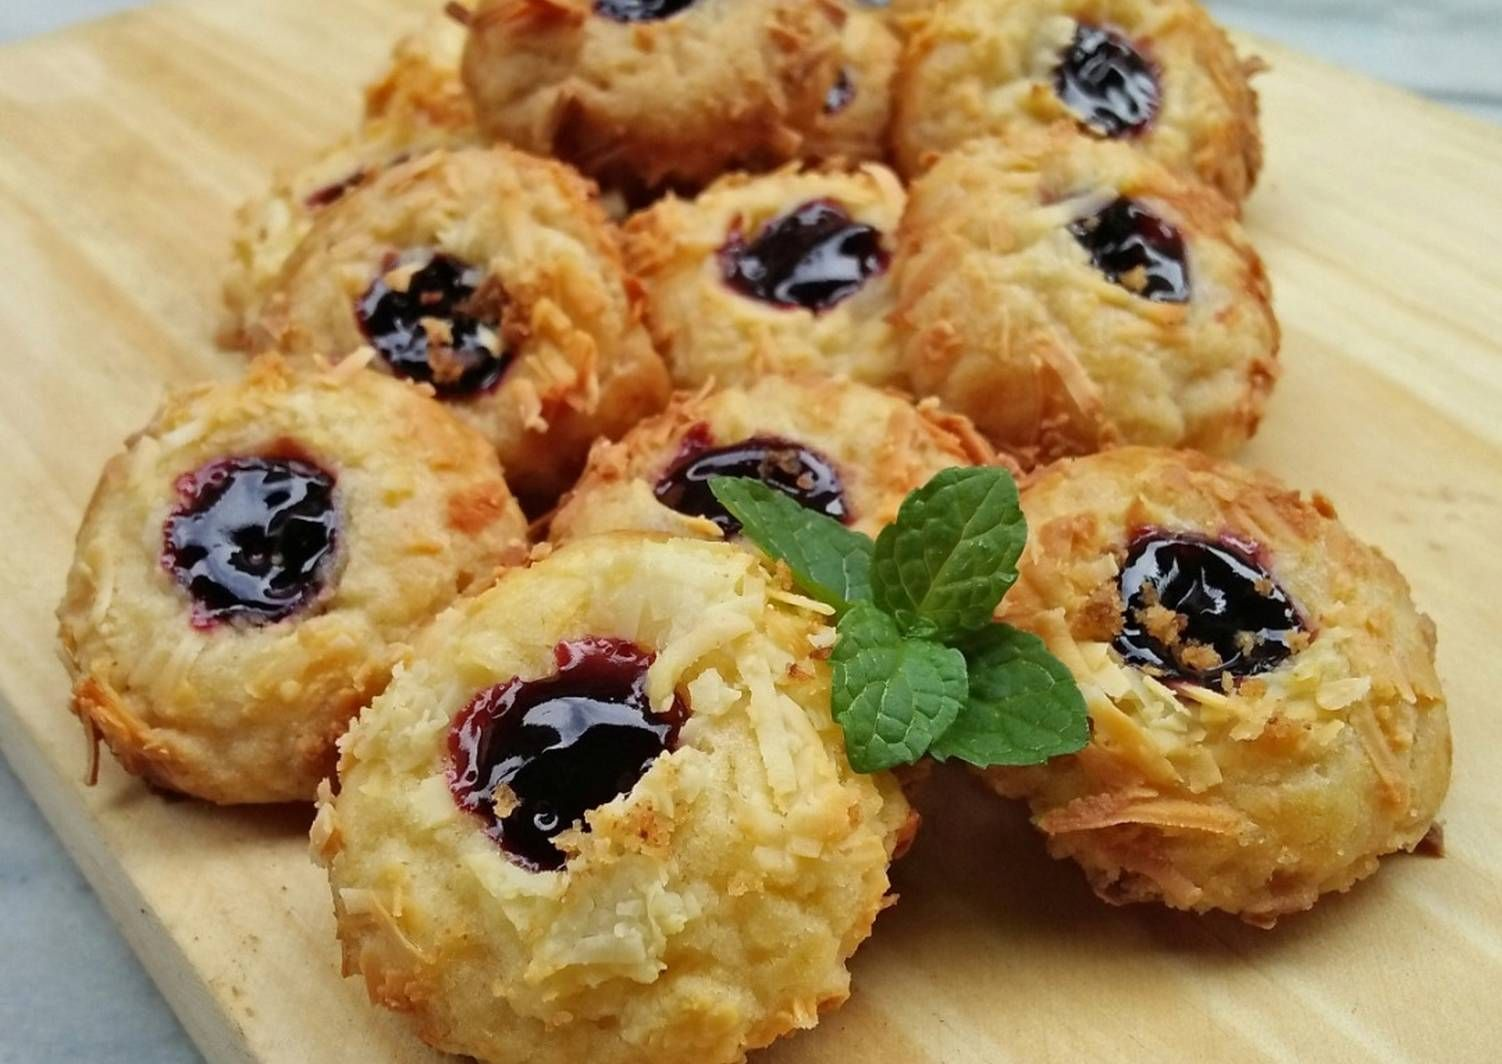 Resep Blueberry Cheese Thumbprint Cookies Oleh Dilla Wahab Resep Blueberry Masakan Resep